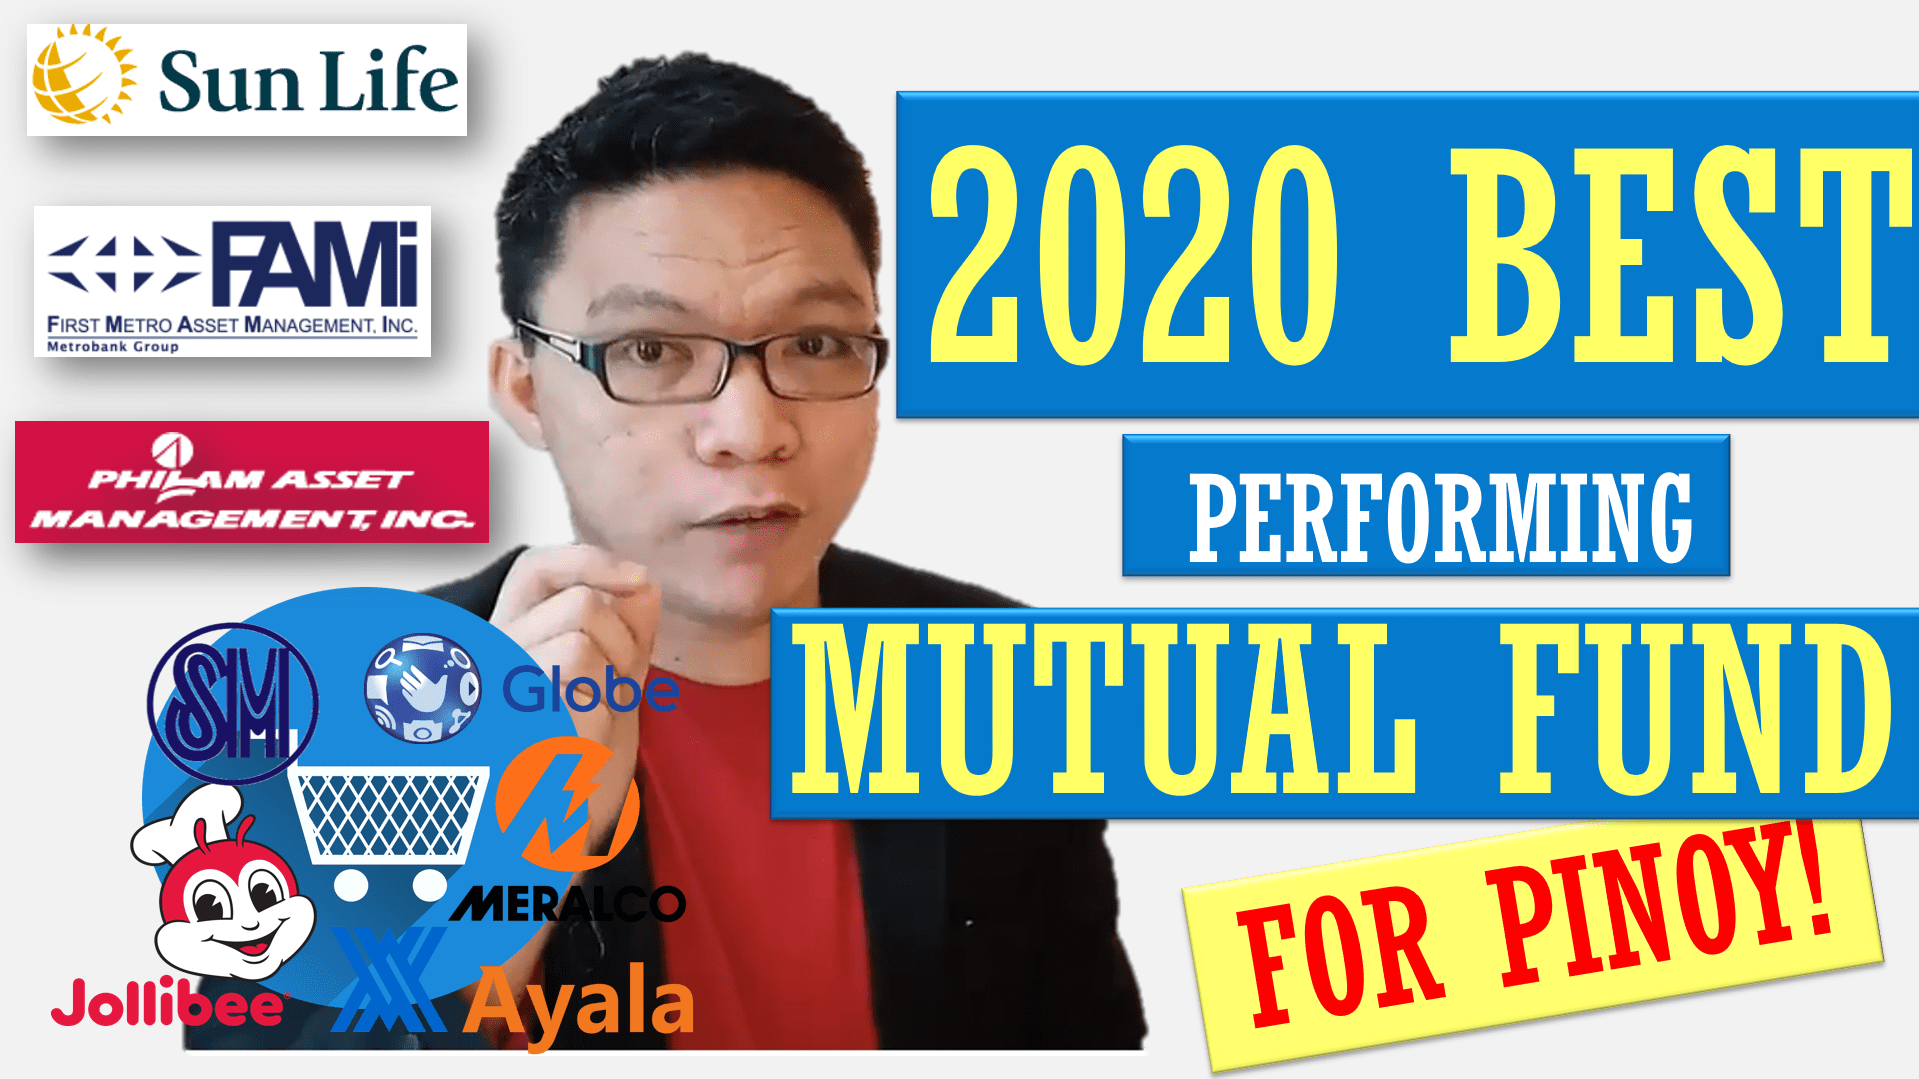 2020 BEST Performing Mutual Fund in the Philippines